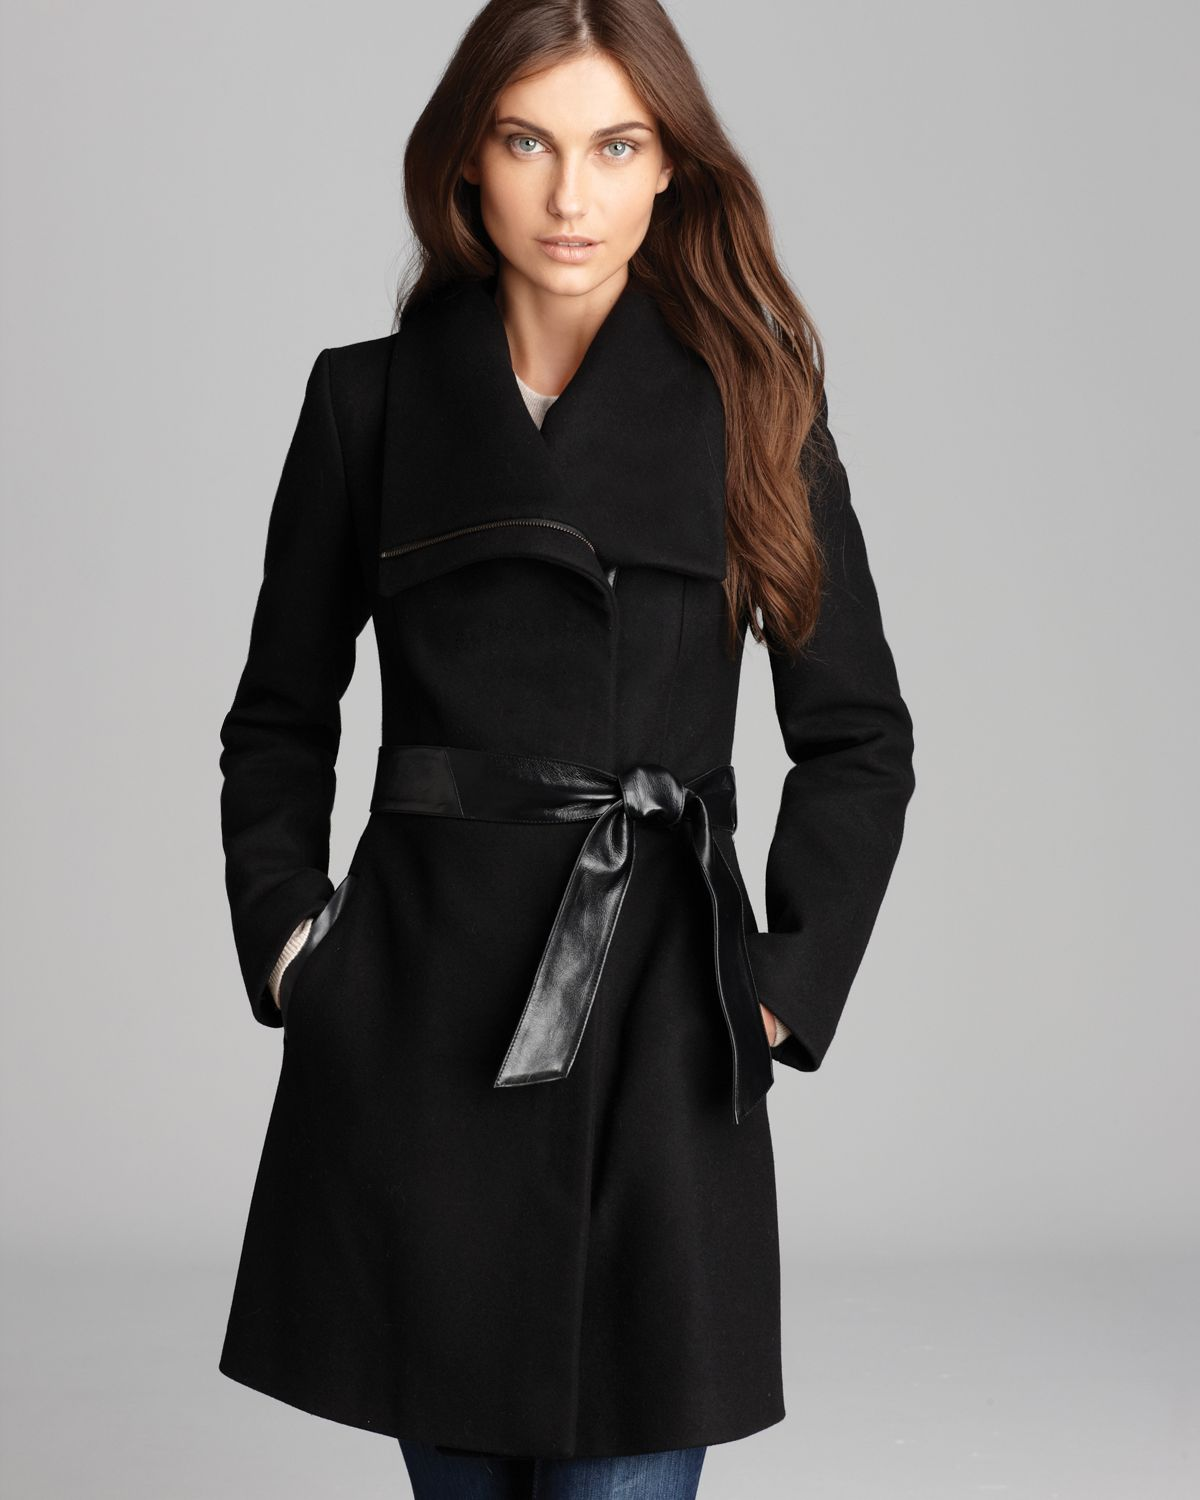 Mackage Coat - Kathryn Leather Belt in Black | Lyst